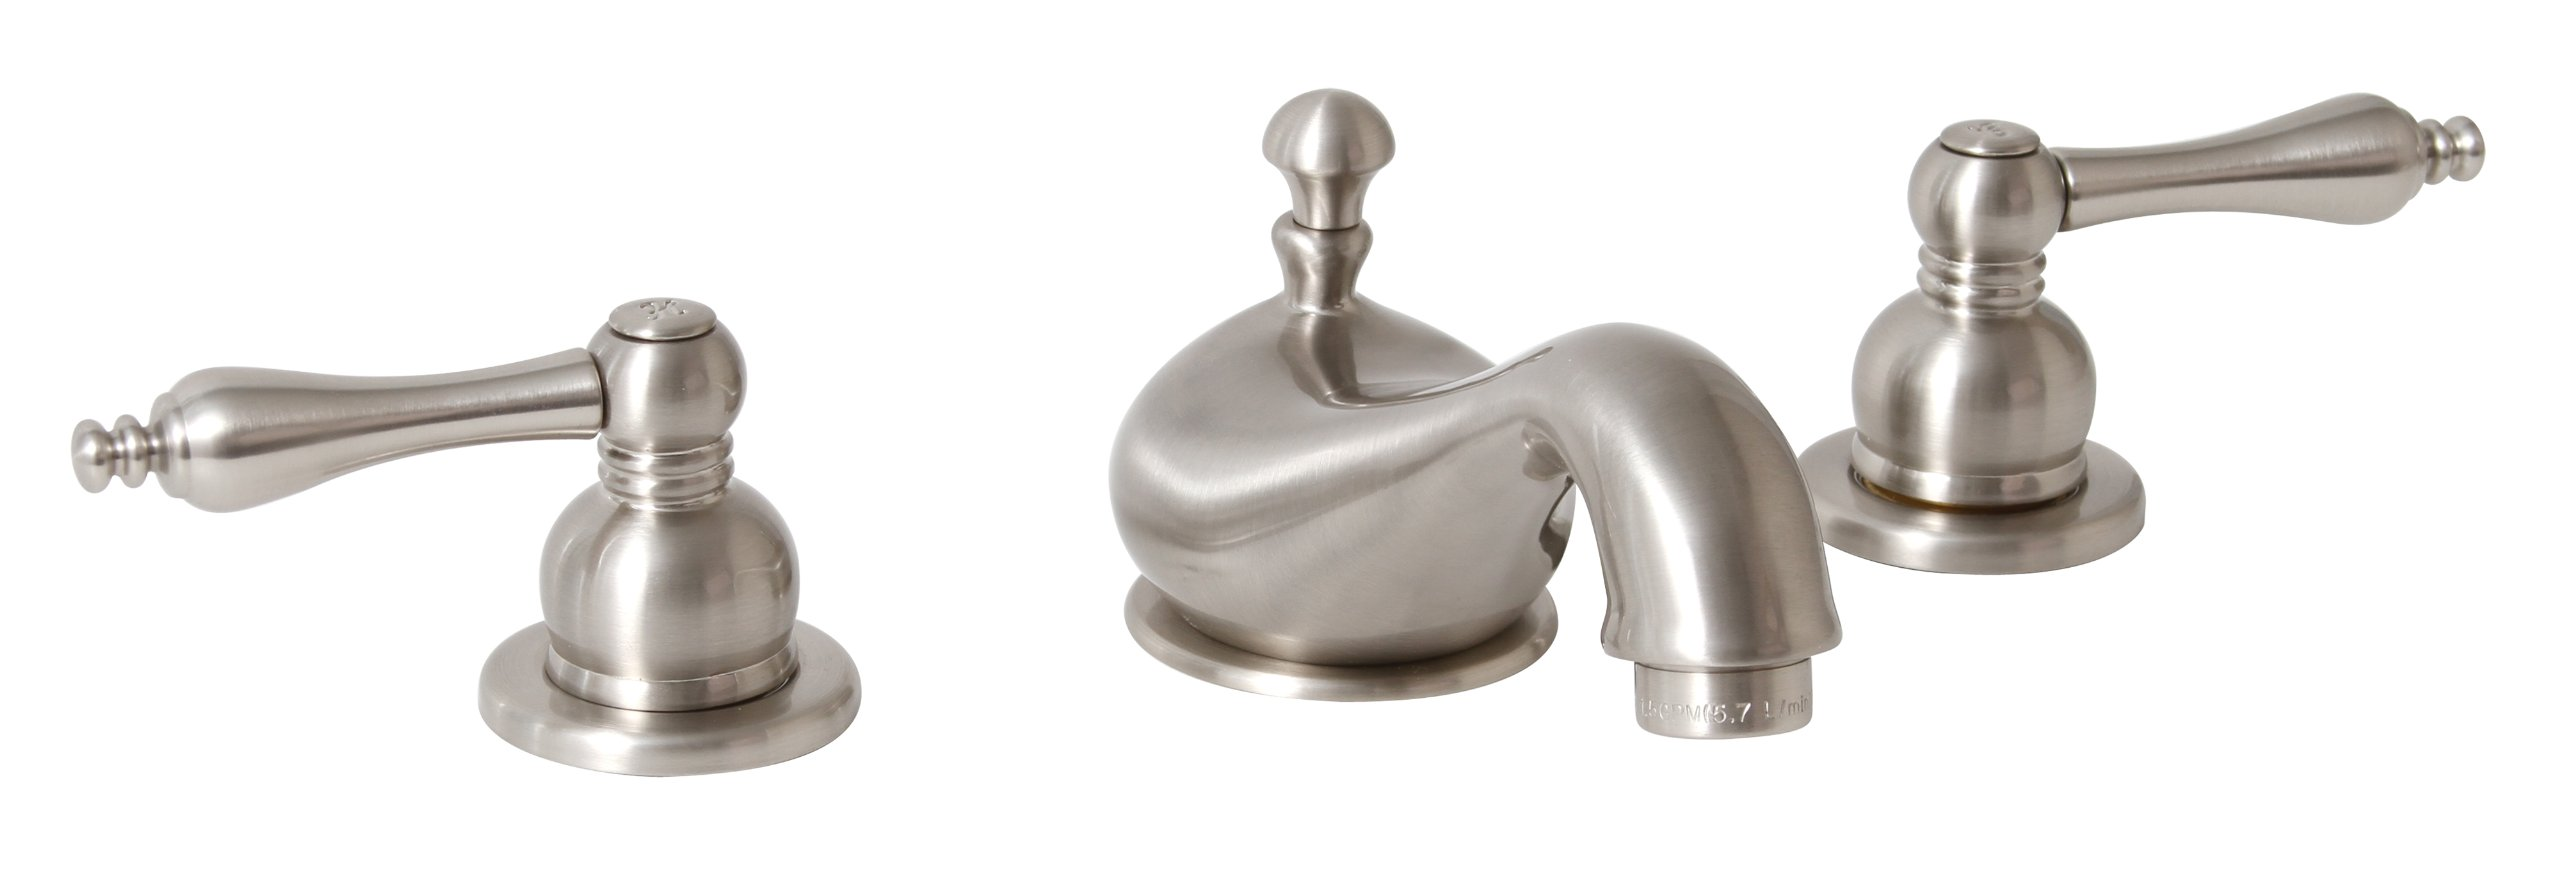 Premier 120586LF Wellington Lead-Free Widespread Two-Handle Lavatory Faucet, Brushed Nickel